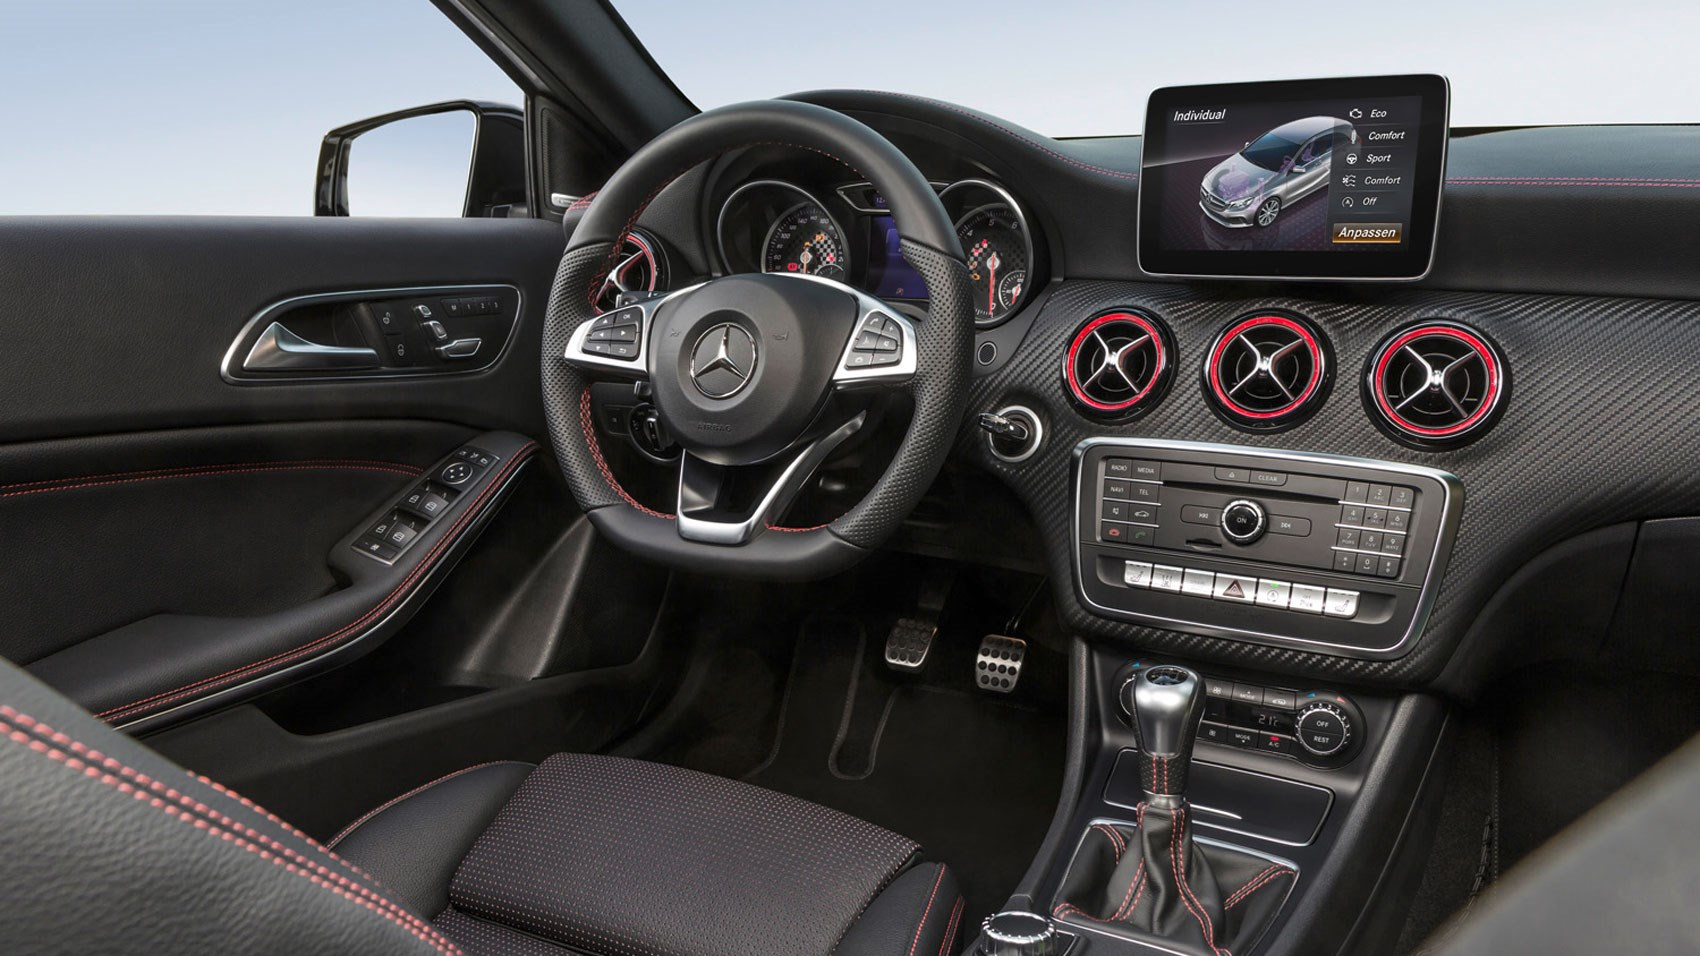 Mercedes Benz A250 Amg 2015 Review Car Magazine